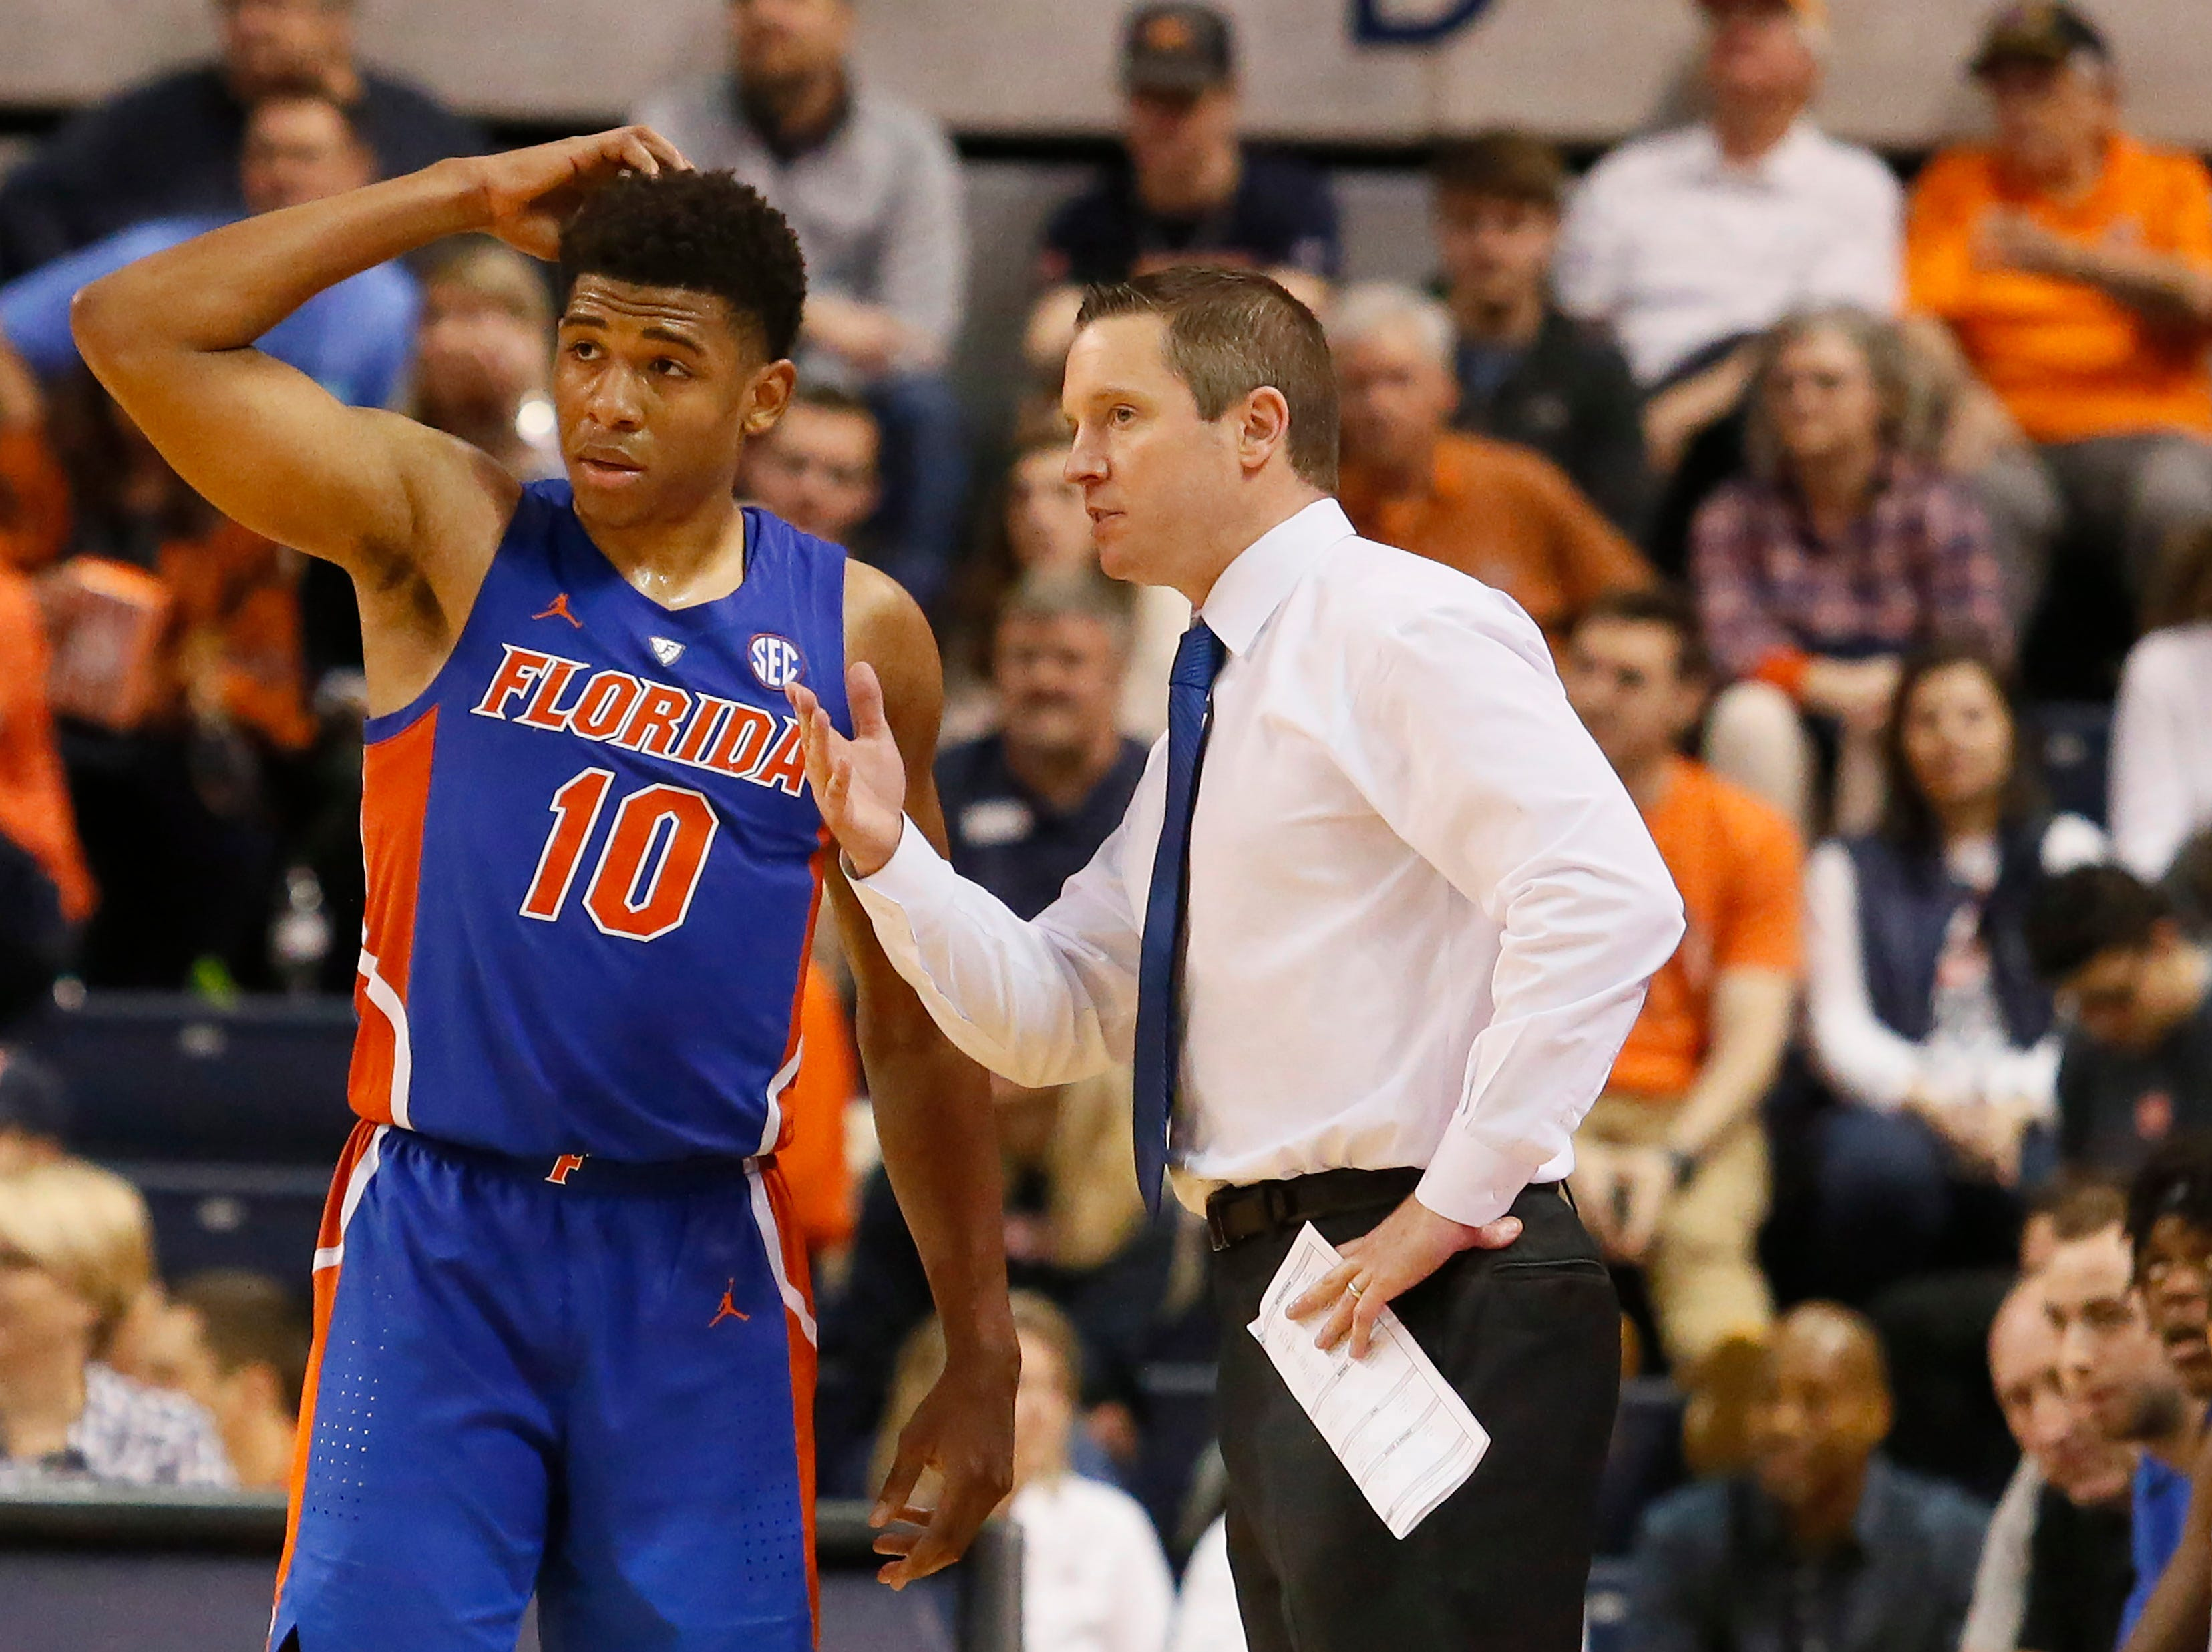 Feb 5, 2019; Auburn, AL, USA; Florida Gators guard Noah Locke (10) speaks with head coach Mike White during the second half against the Auburn Tigers at Auburn Arena. Mandatory Credit: John Reed-USA TODAY Sports